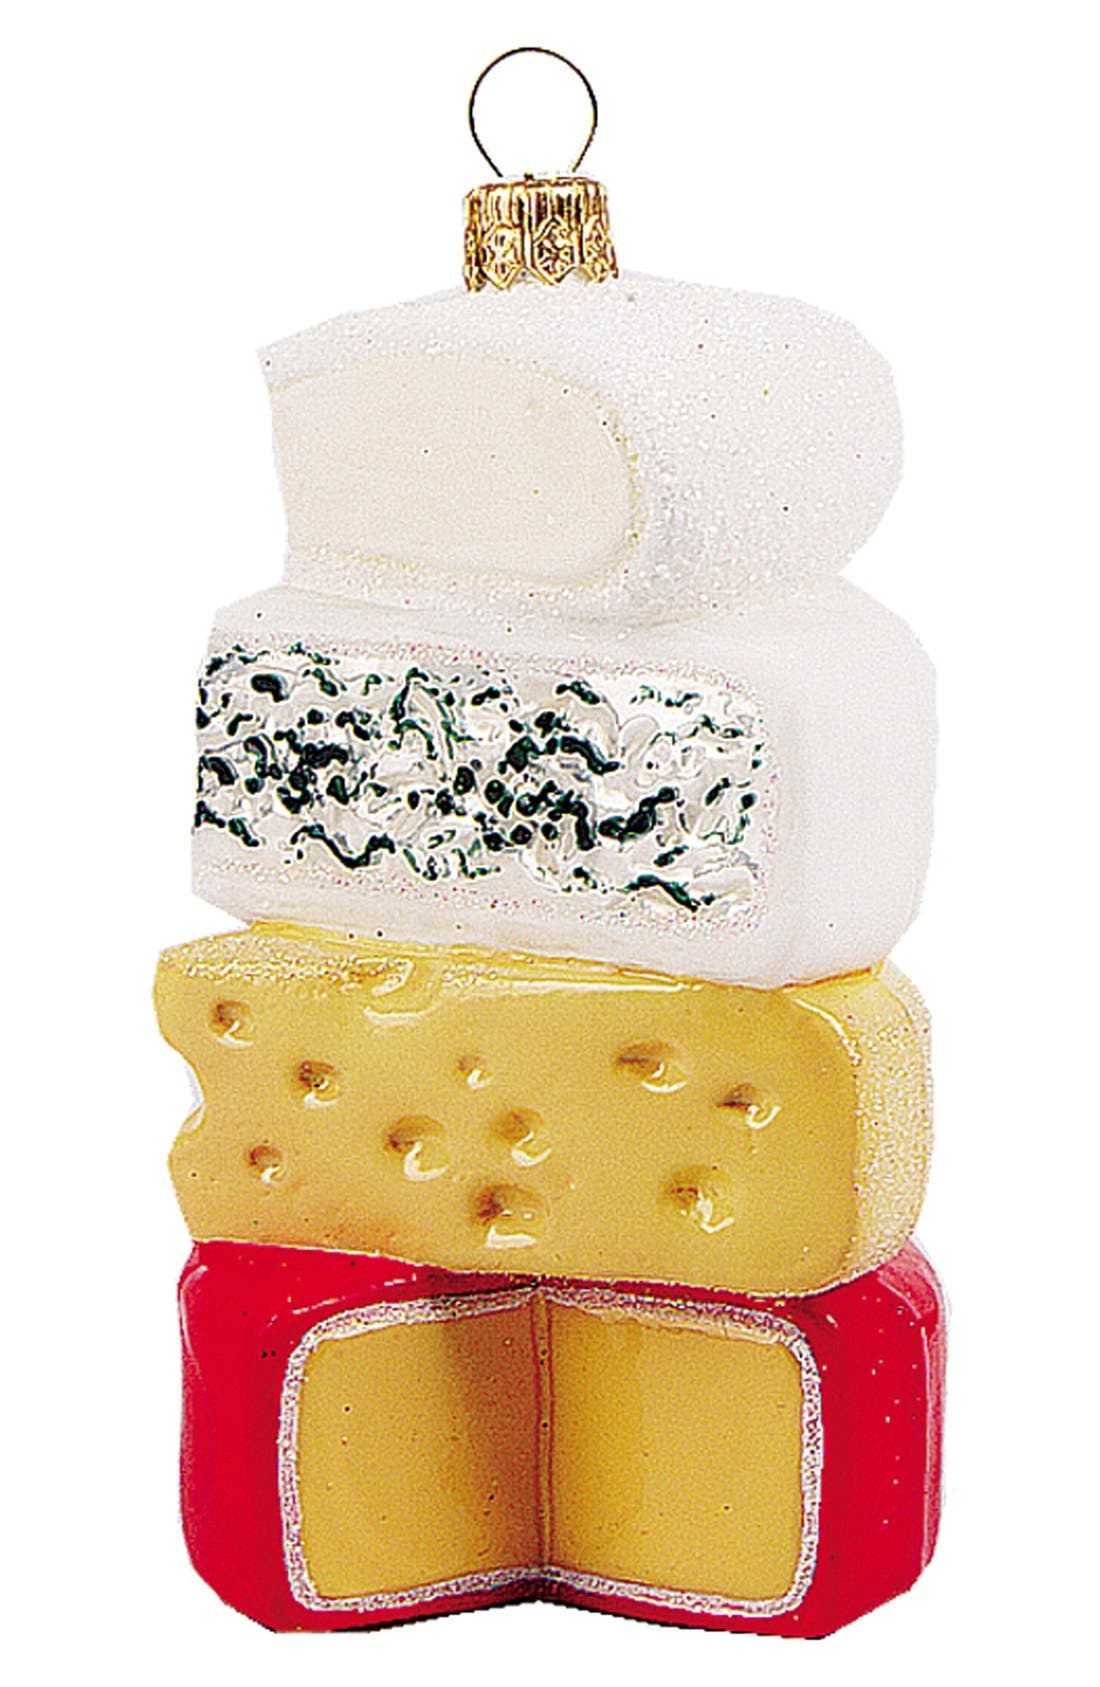 'Cheese Stack' Handblown Glass Ornament,                             Main thumbnail 1, color,                             Red Multi